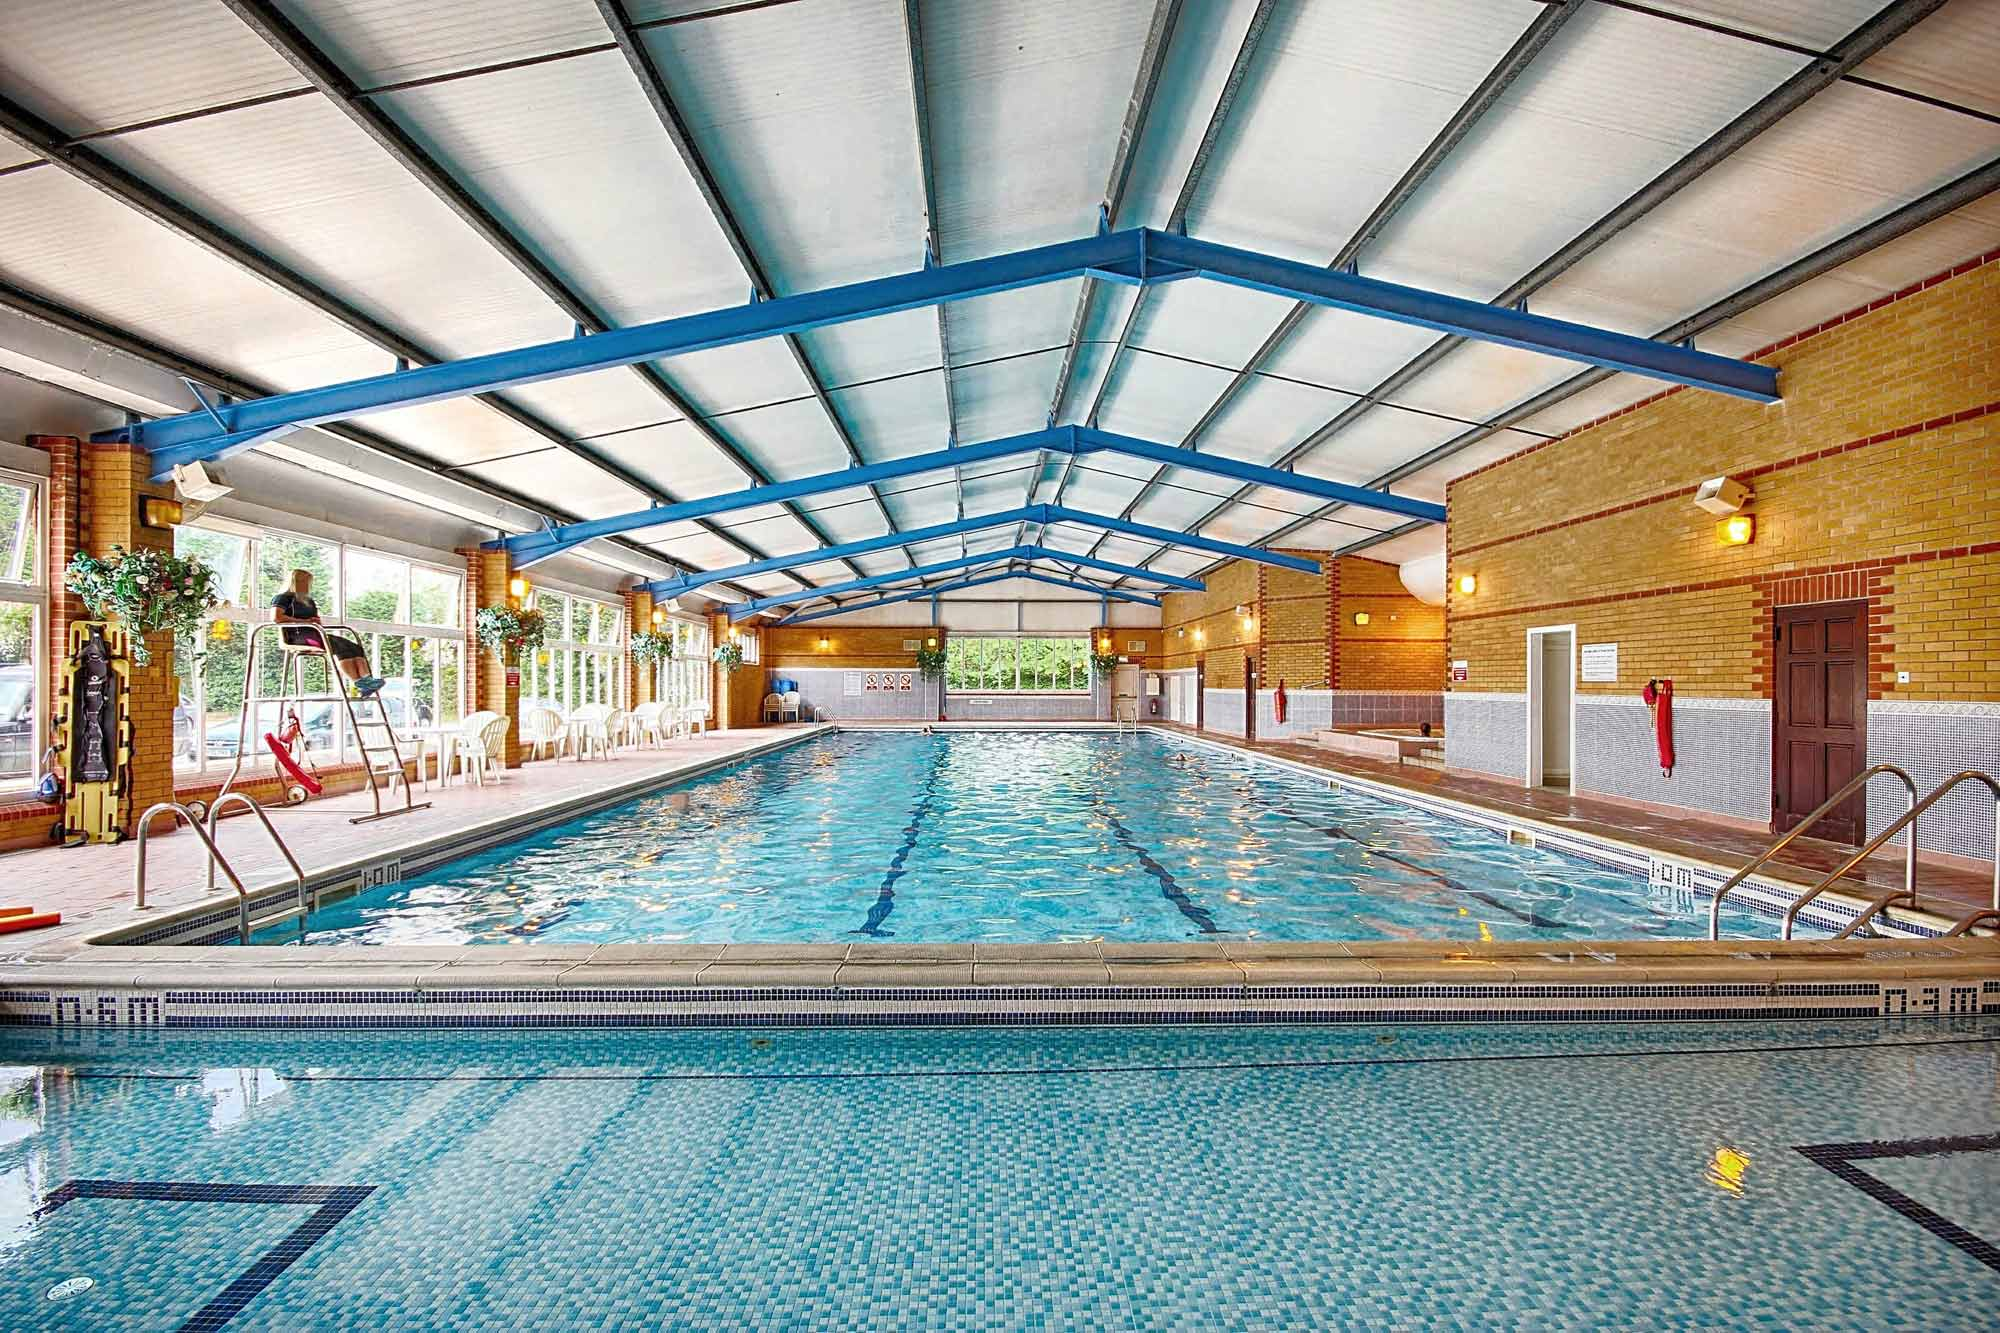 Woodlands Leisure Swimming Pool And Gym Sheringham